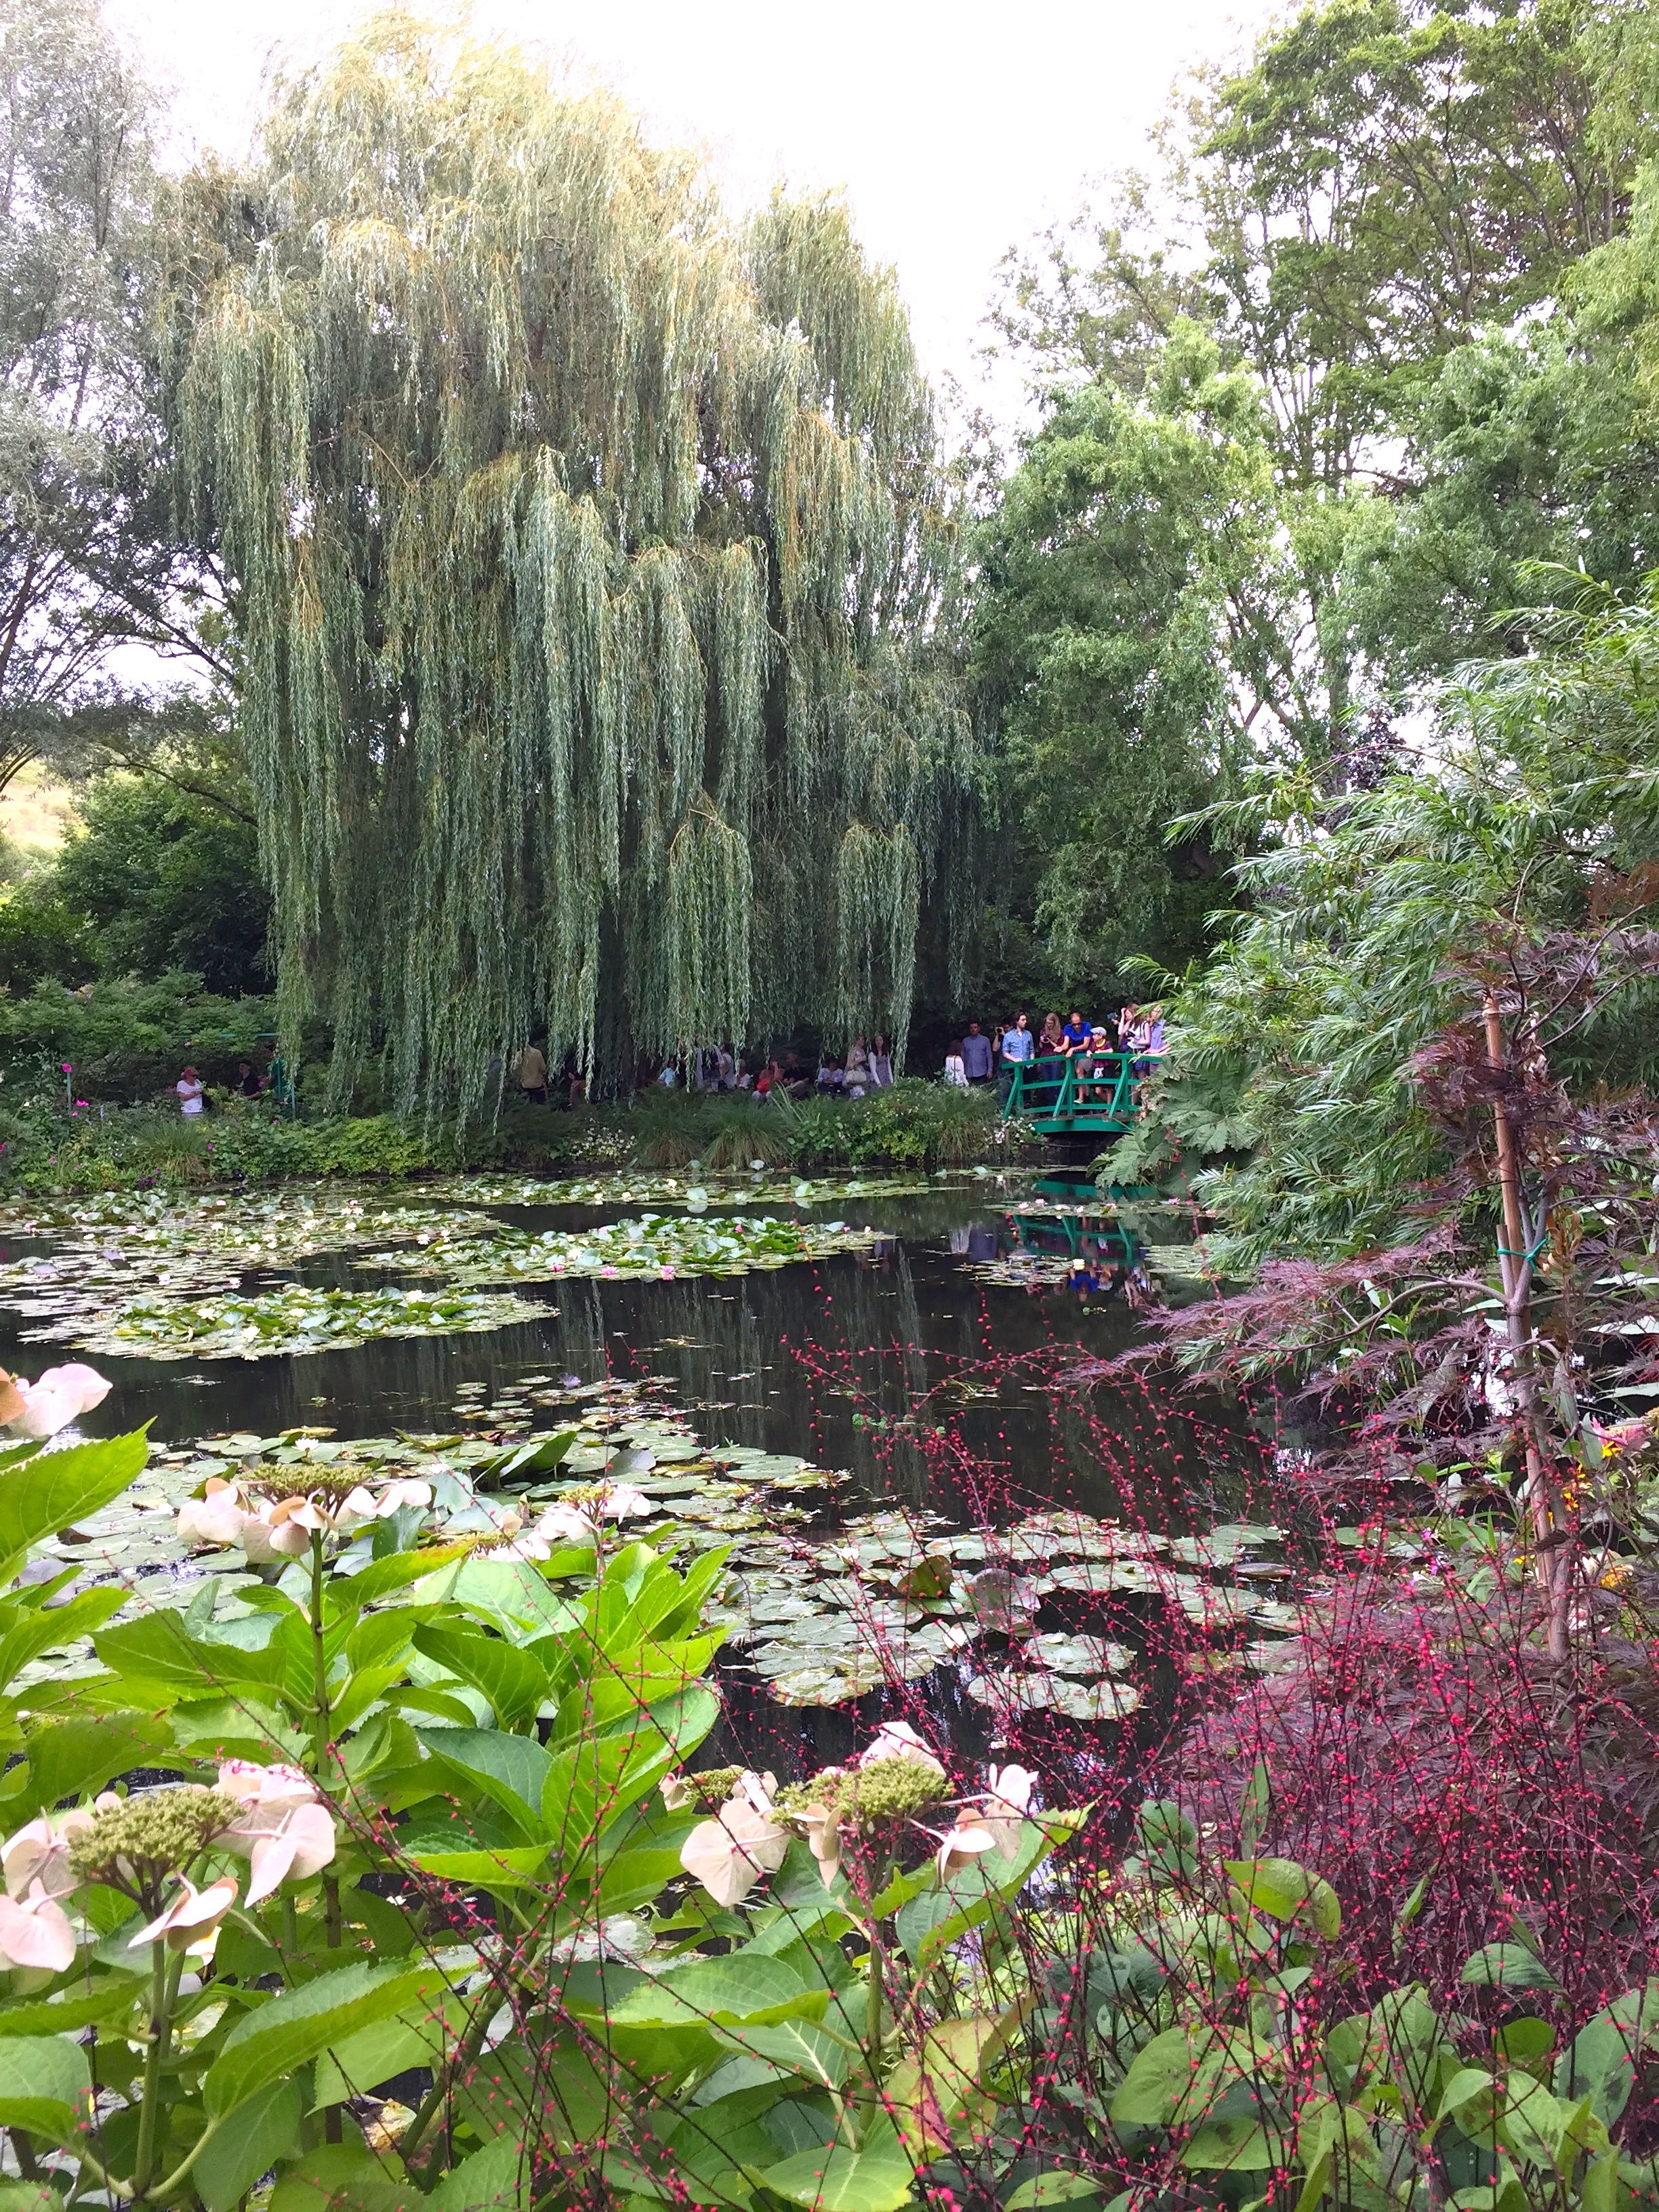 monet s gardens in giverny a photo essay a day away travel a willow tree made famous by claude monet stands tall over the water lily ponds